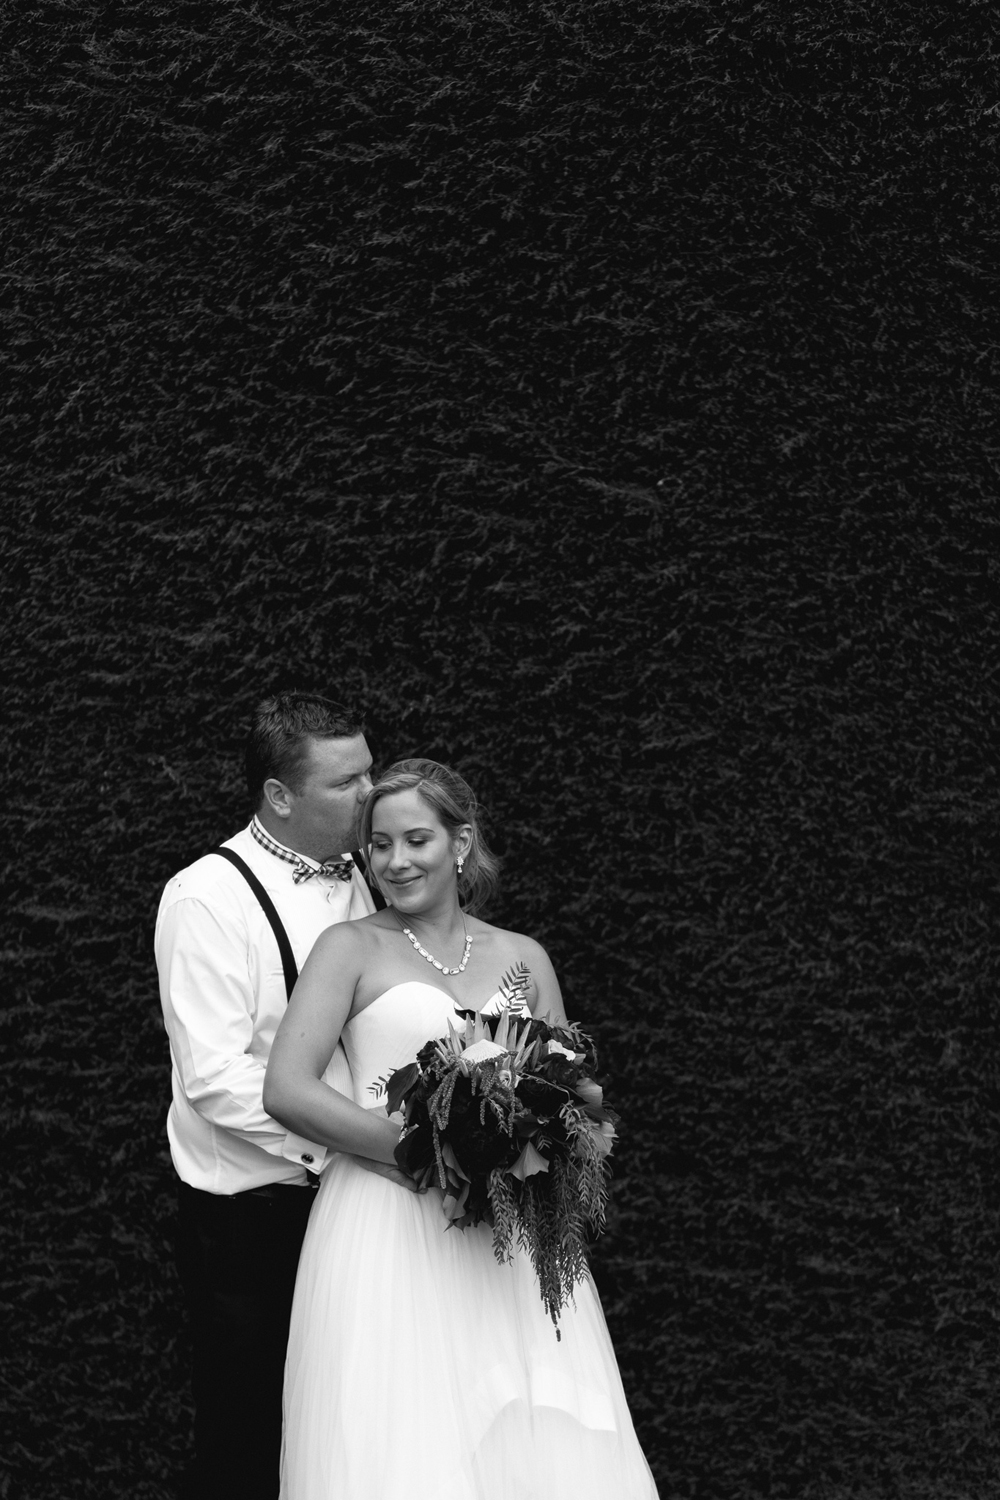 677-Byron-Bay-Wedding-Photographer-Carly-Tia-Photography.jpg